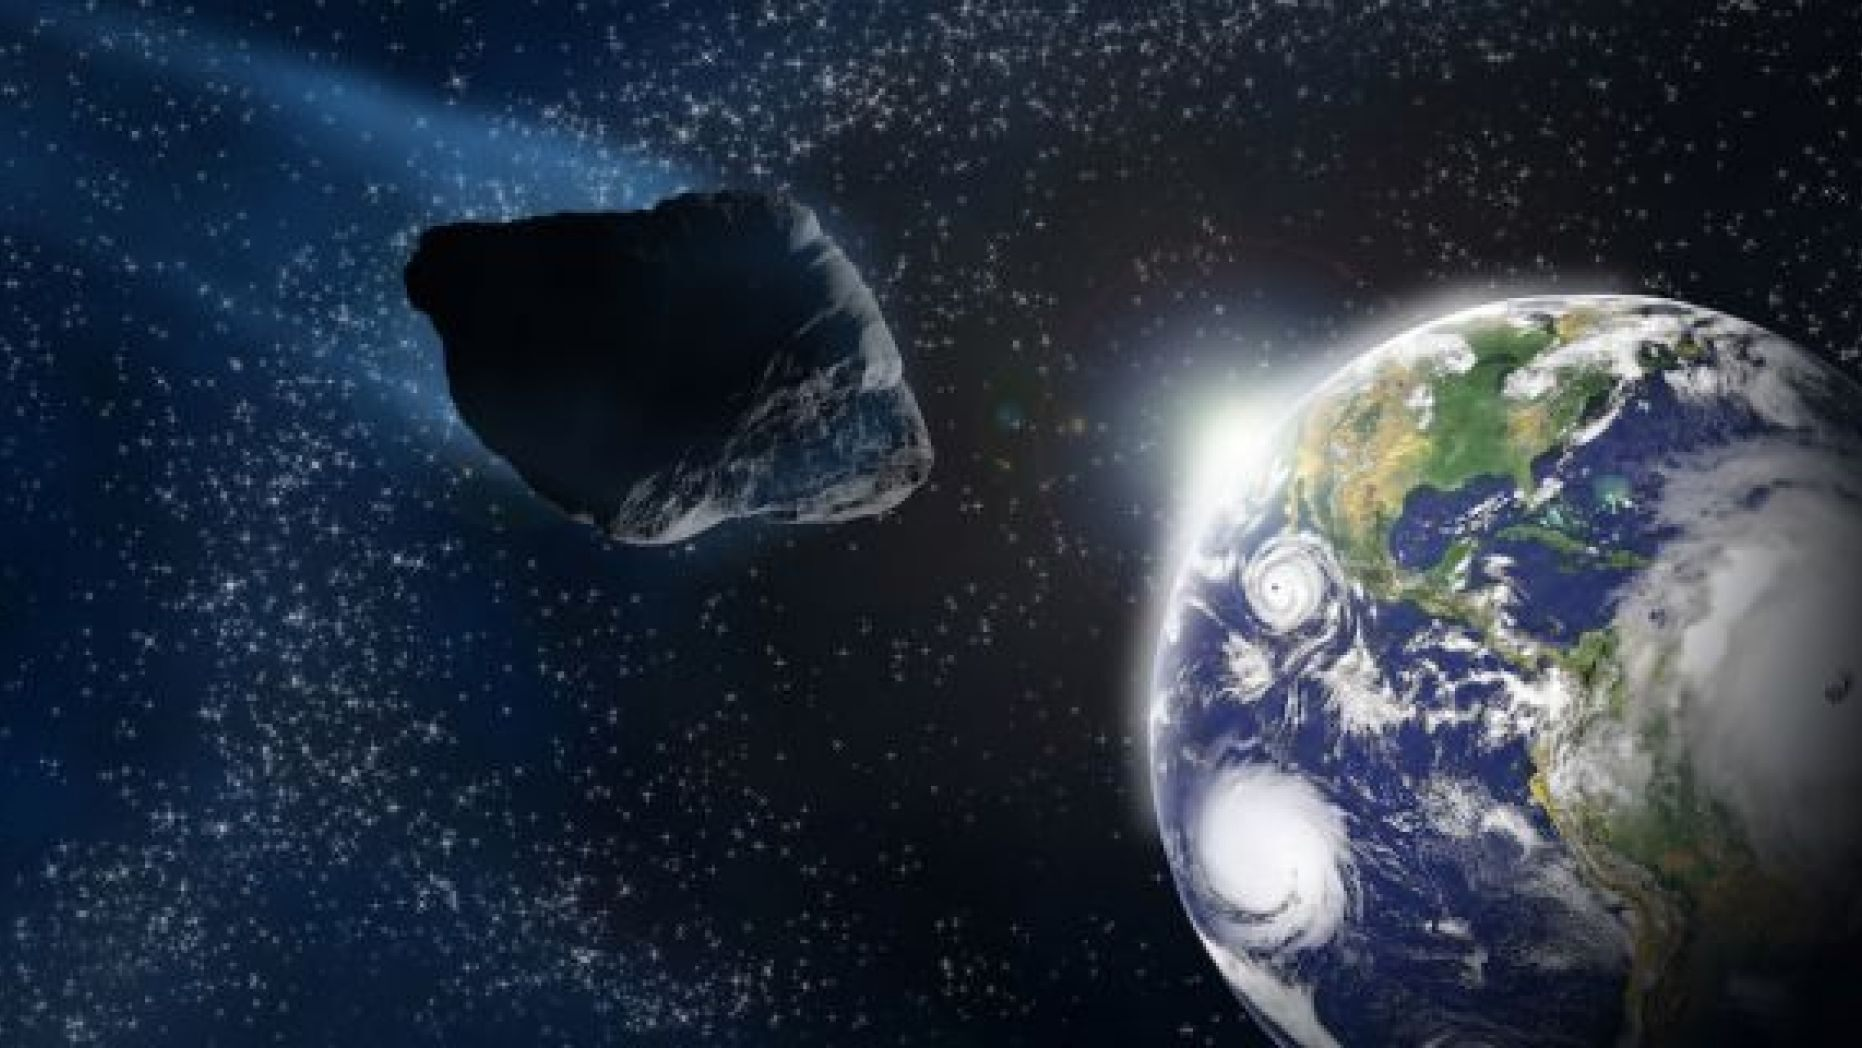 The University of Hawaii detected an asteroid before it could strike the Earth